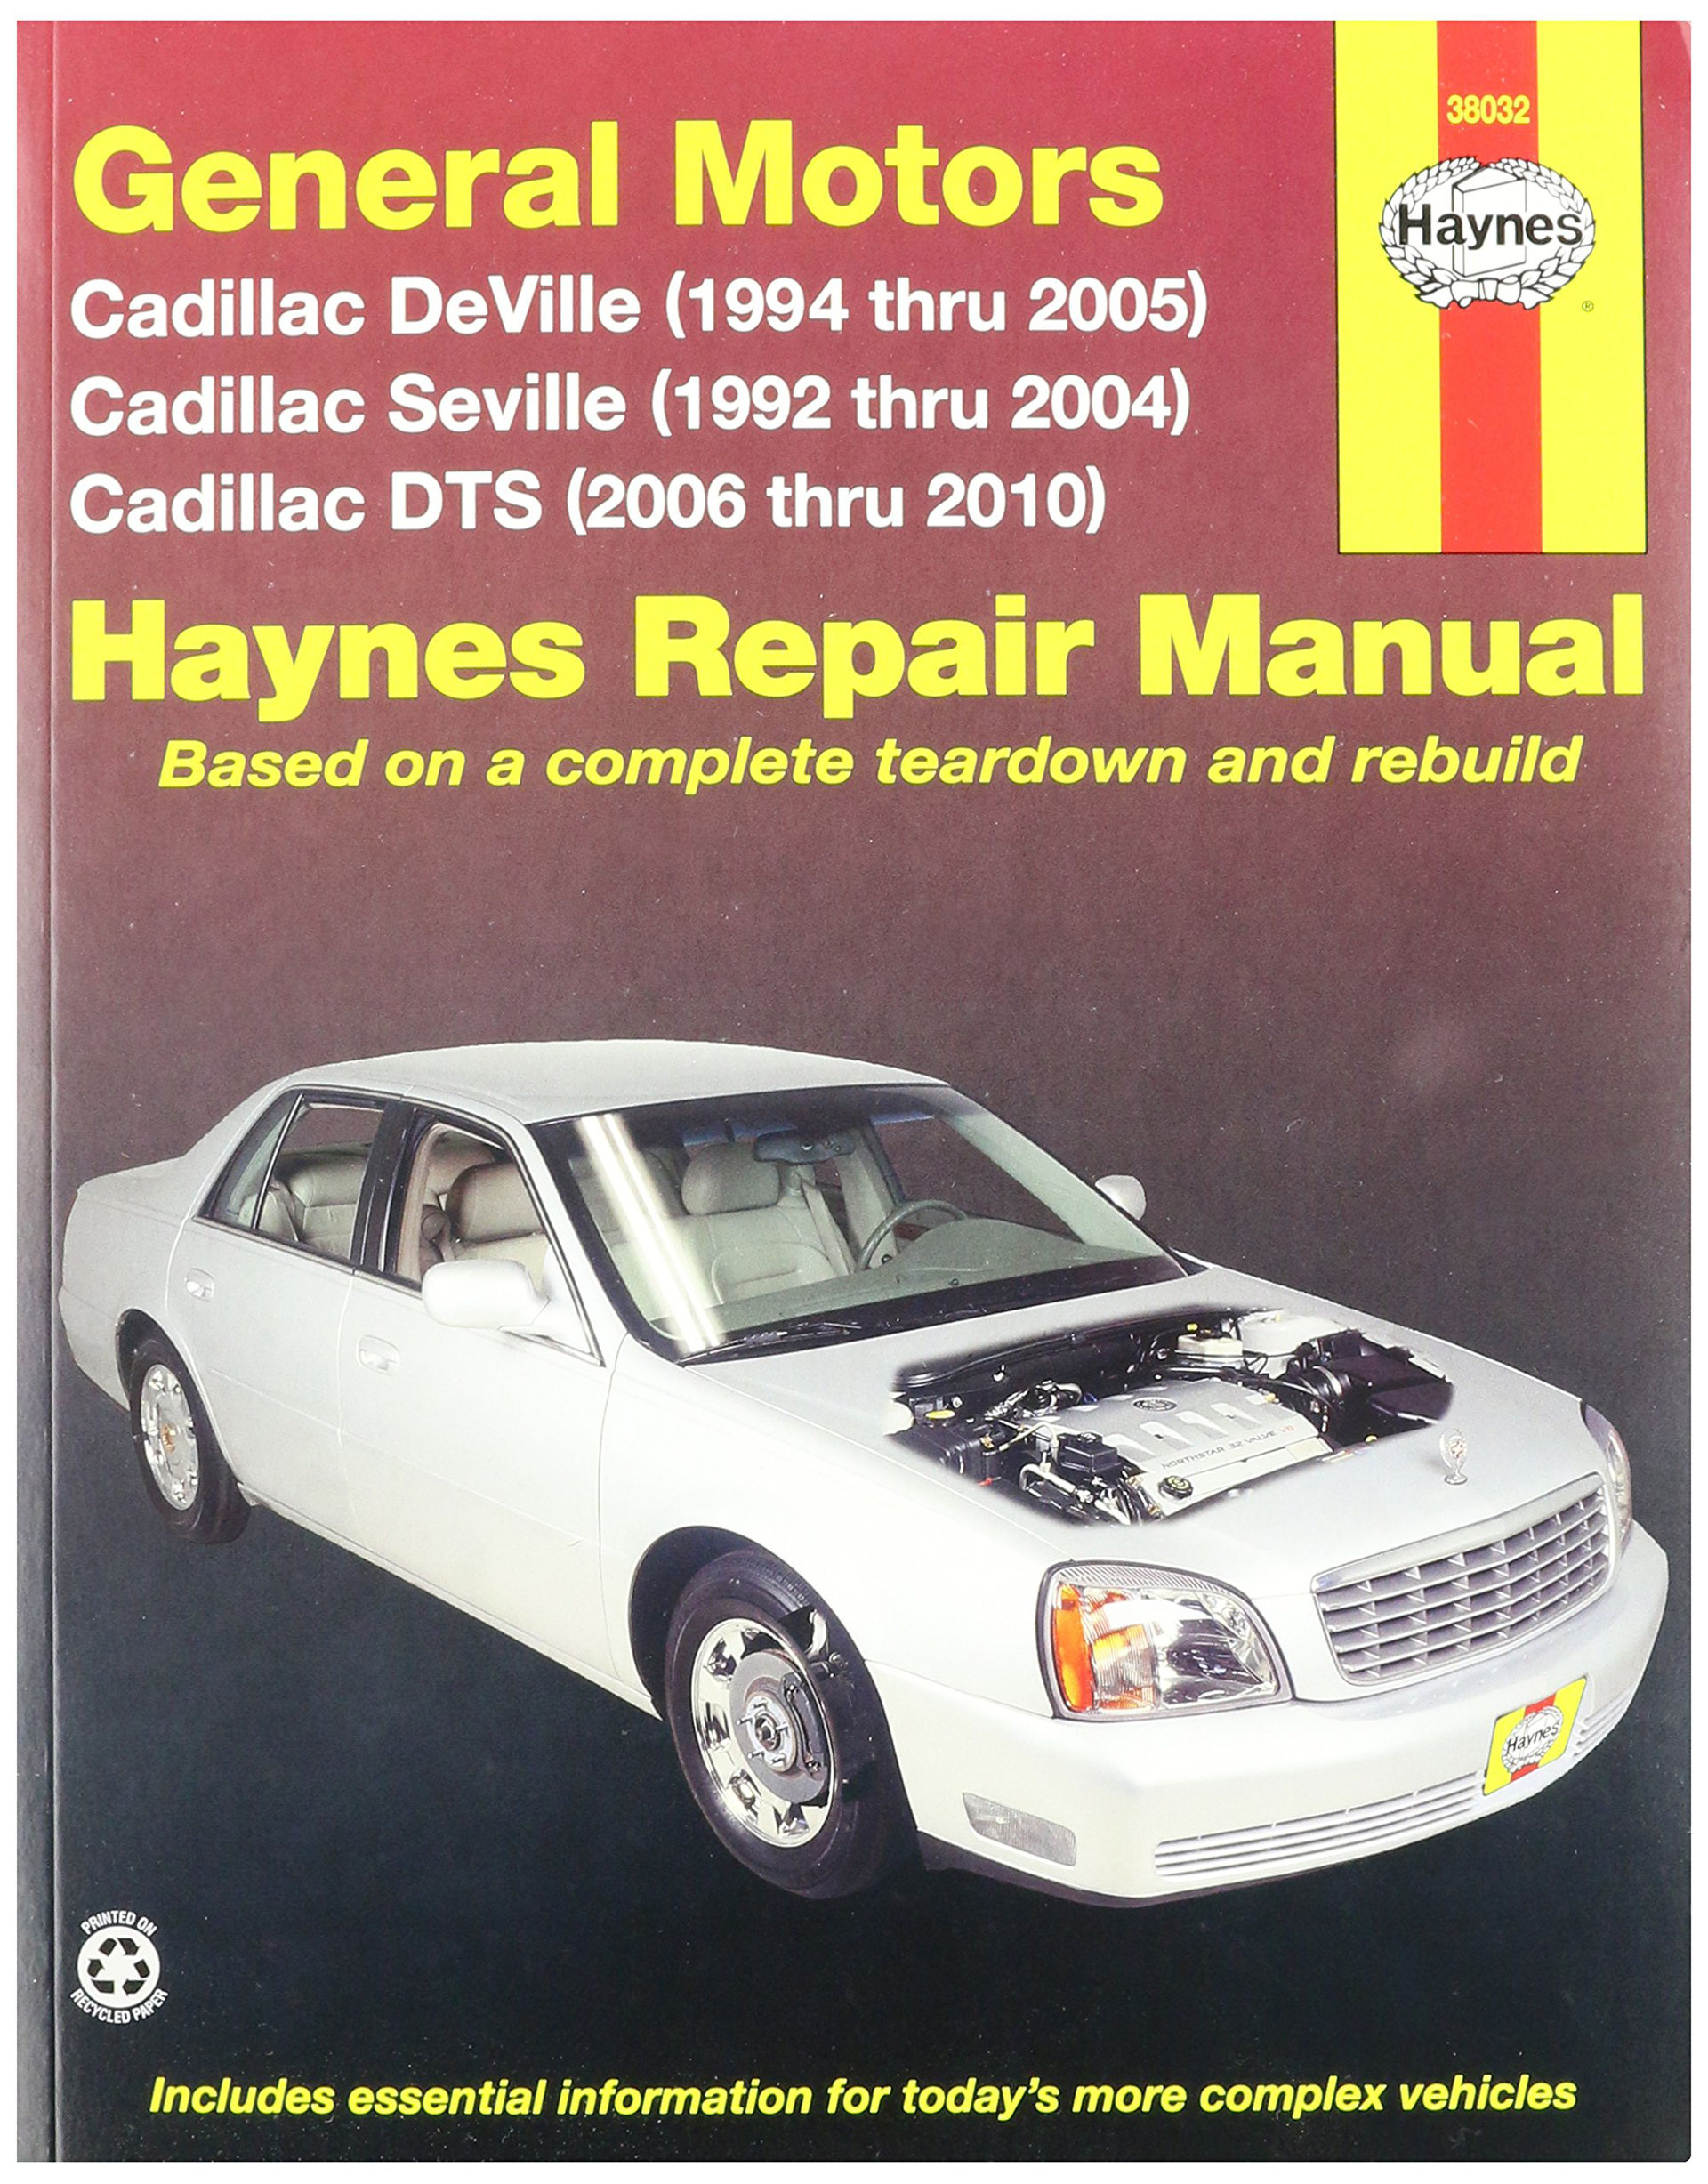 Cadillac SEVILLE - Wiring DiagramsAutomotive manuals - Wiring Diagrams